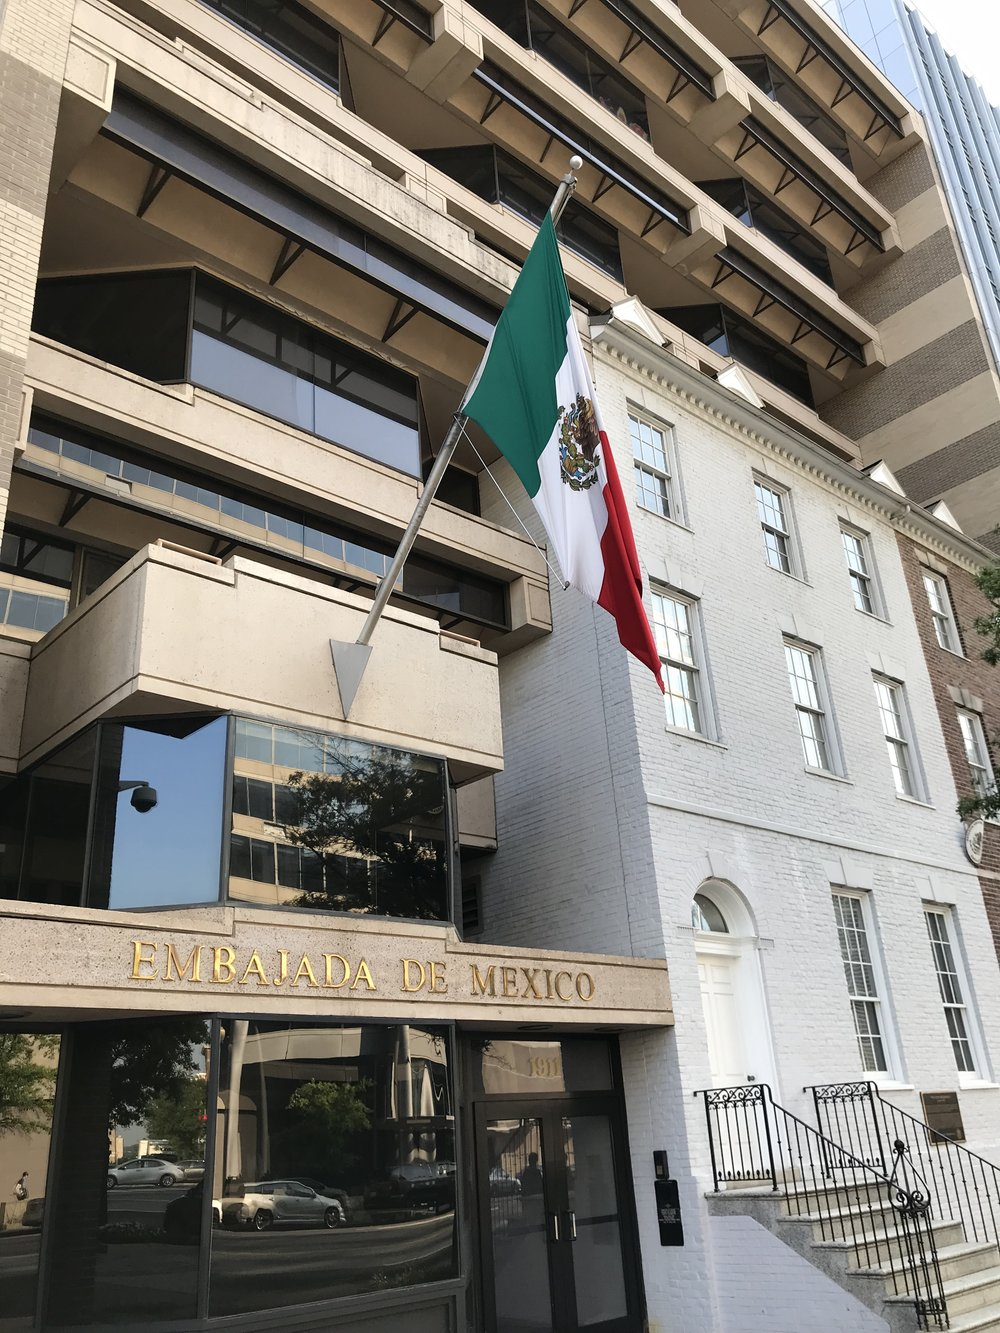 The Embassy of Mexico.